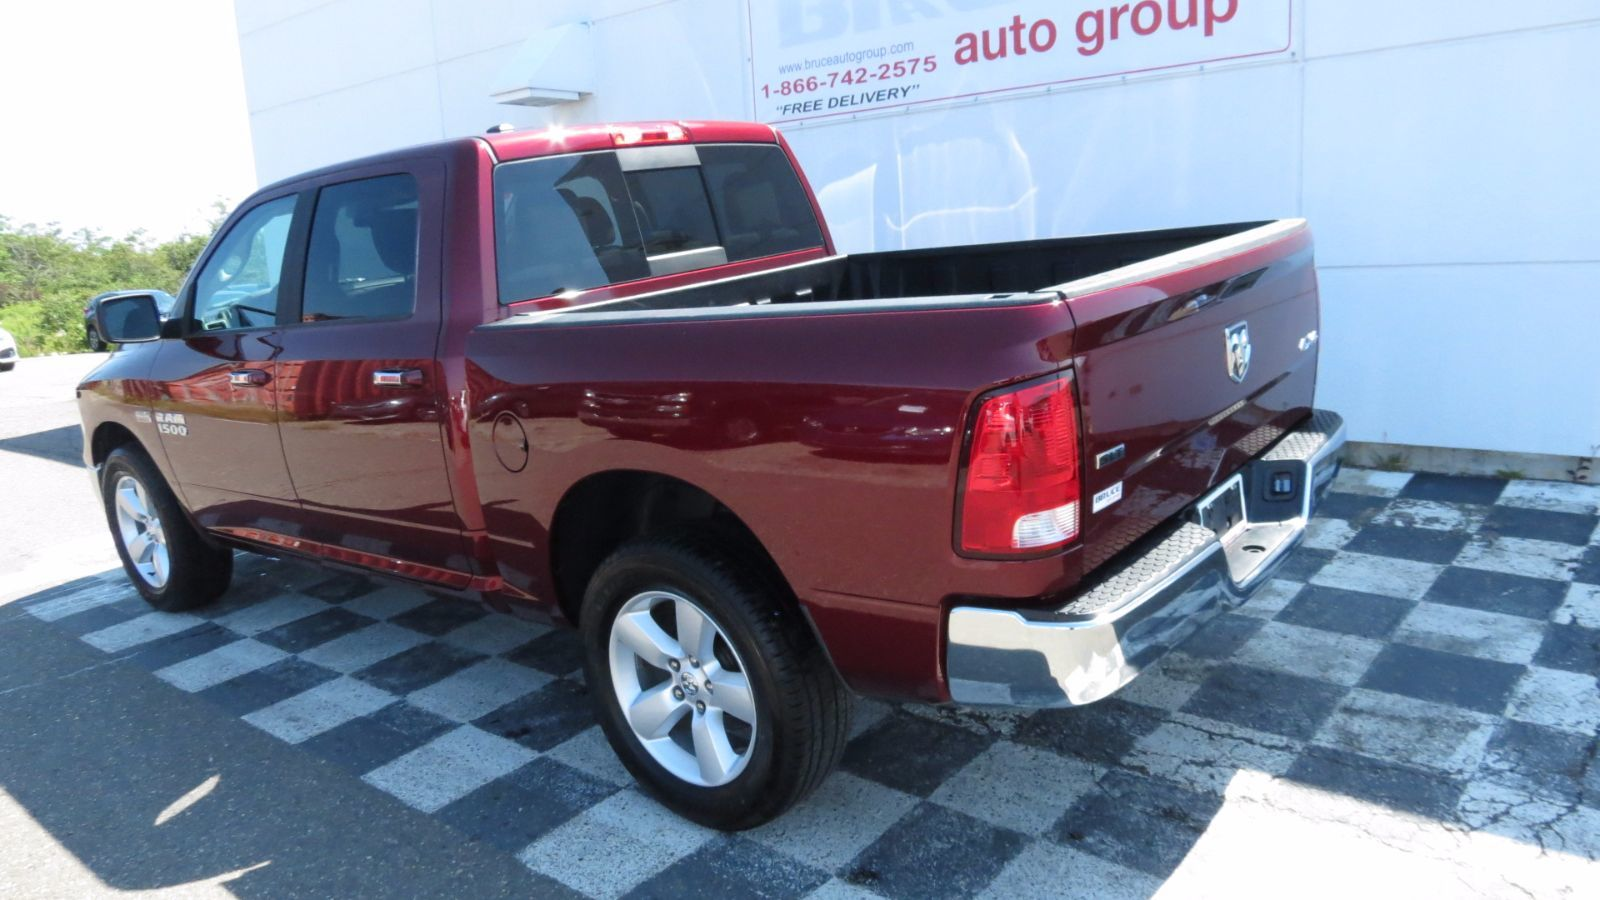 used 2017 dodge ram 1500 slt 5 7l 8 cyl automatic 4x4 crew cab in middleton h17302a. Black Bedroom Furniture Sets. Home Design Ideas